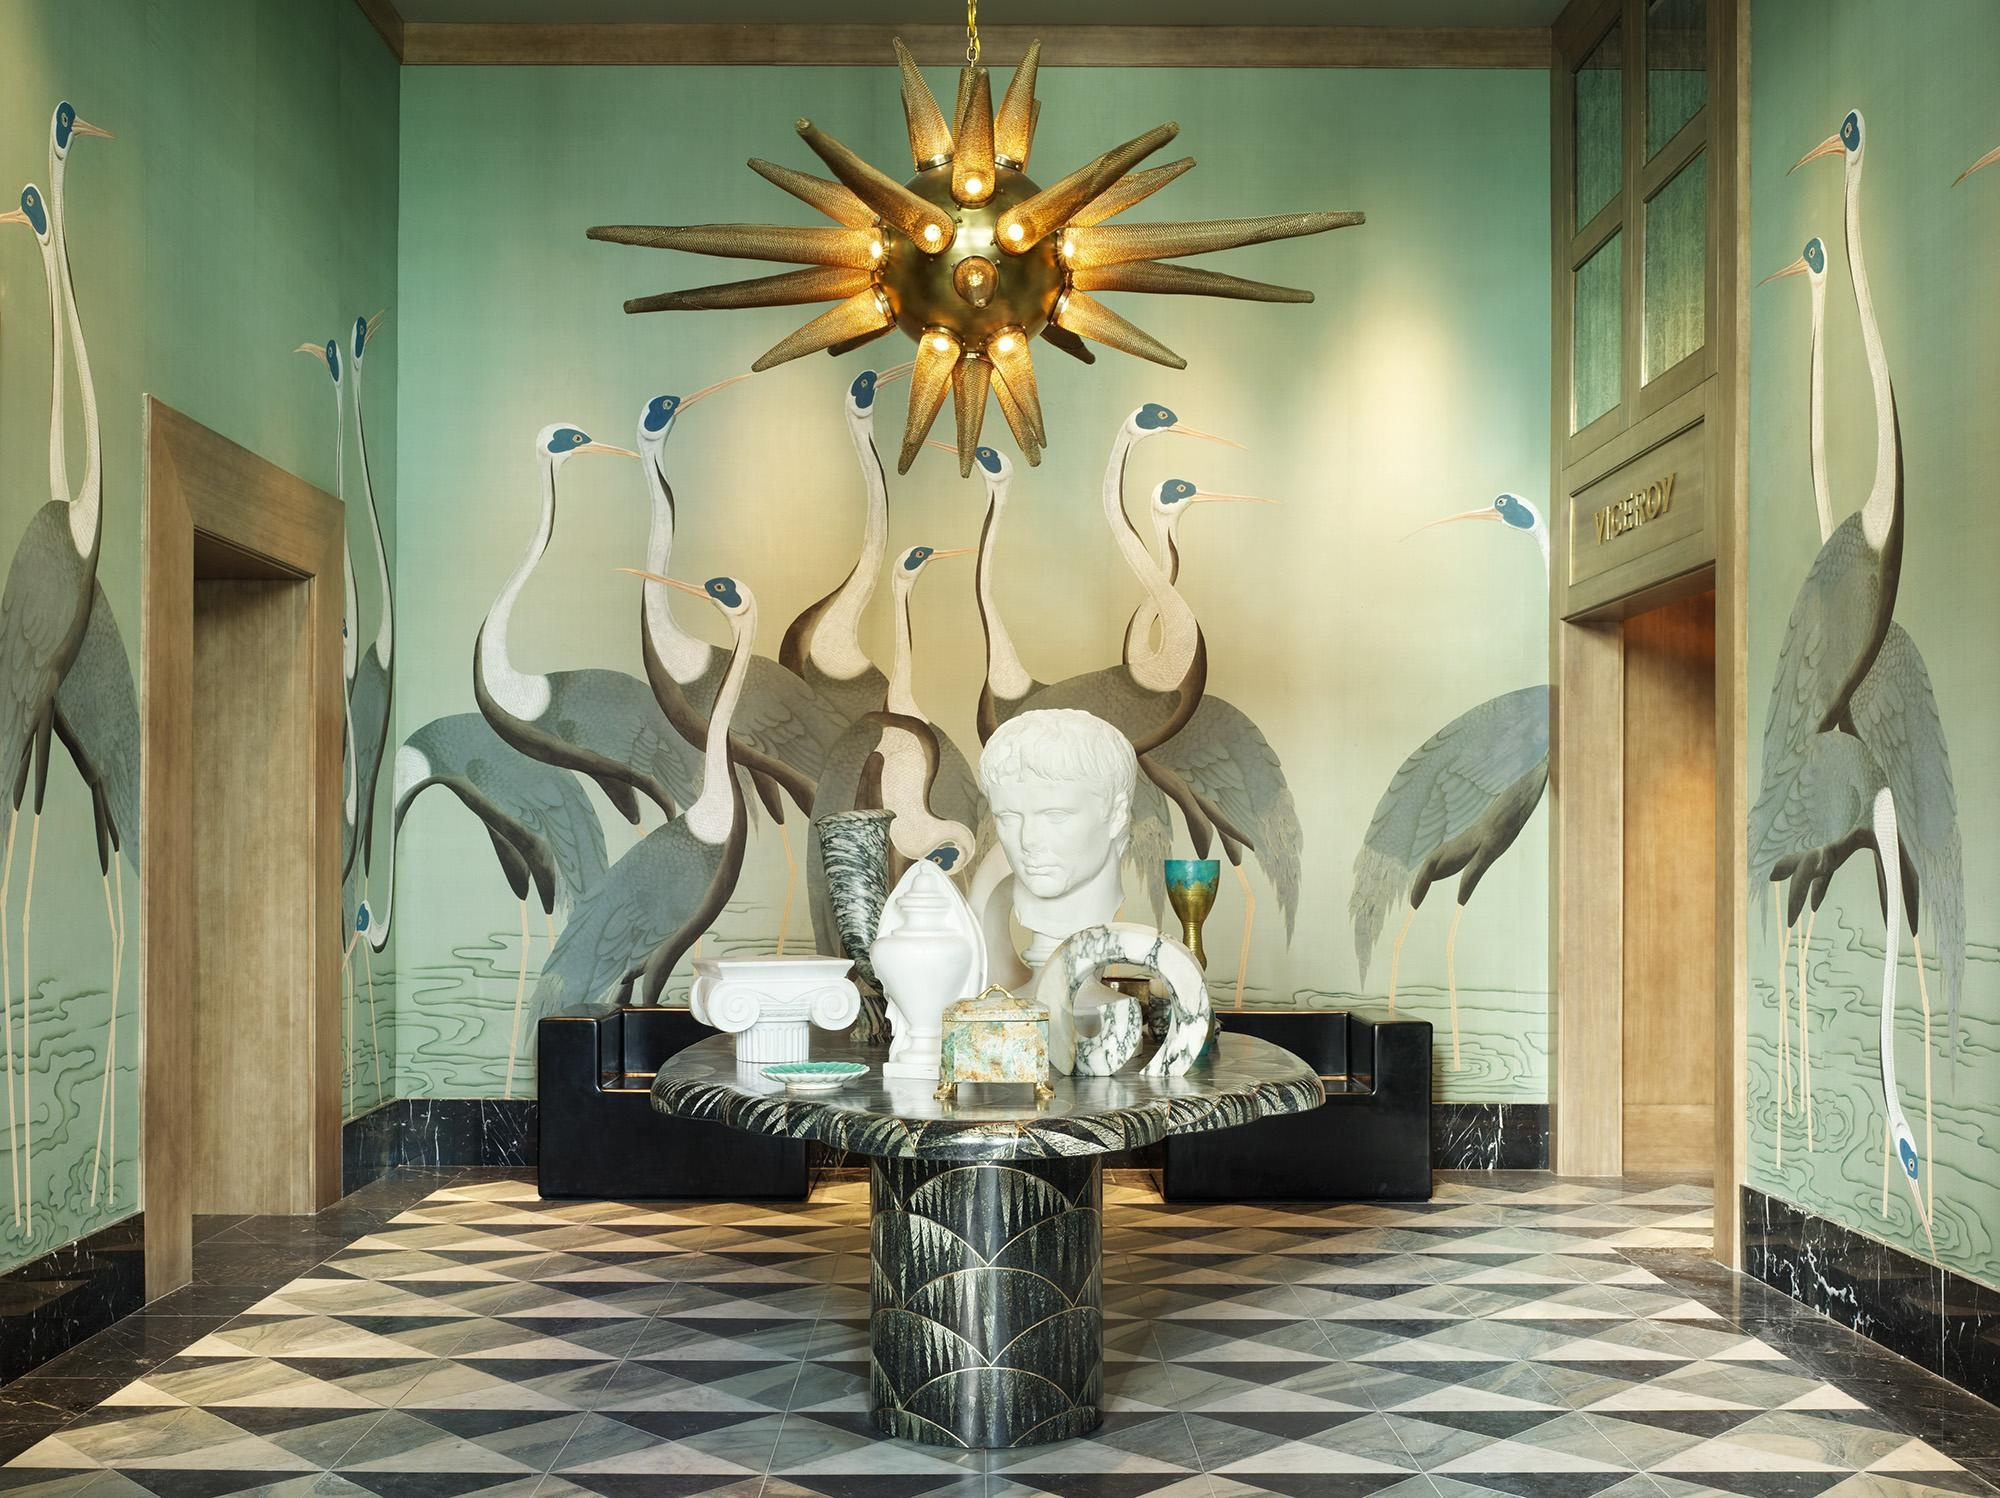 4._miami_viceroy_hotel._edo_cranes_in_special_colourway_on_blue_grey_dyed_silk._interior_design_by_kelly_wearstler